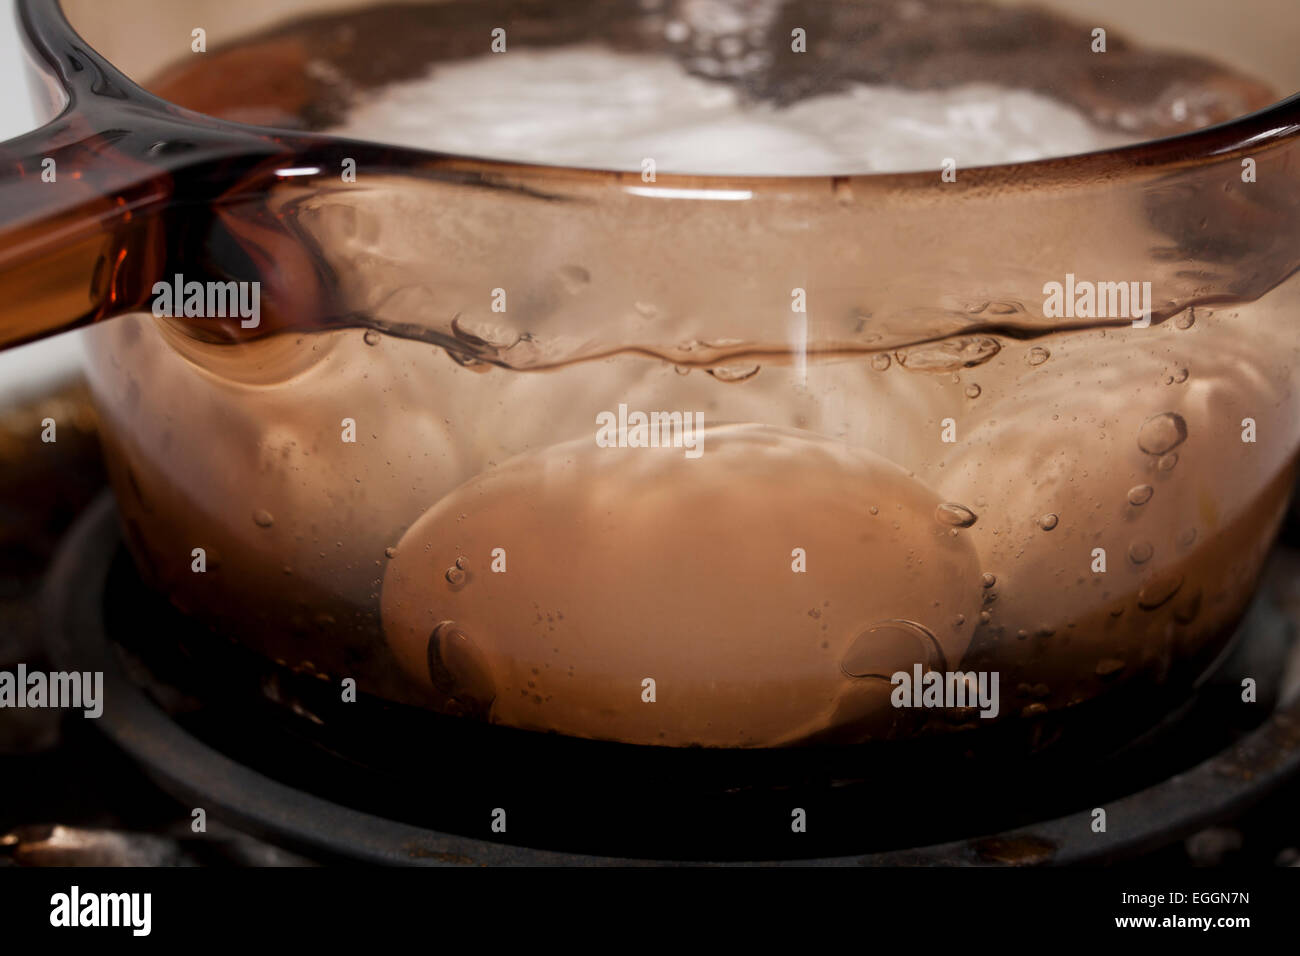 Eggs boiling in Pyrex pot - USA - Stock Image